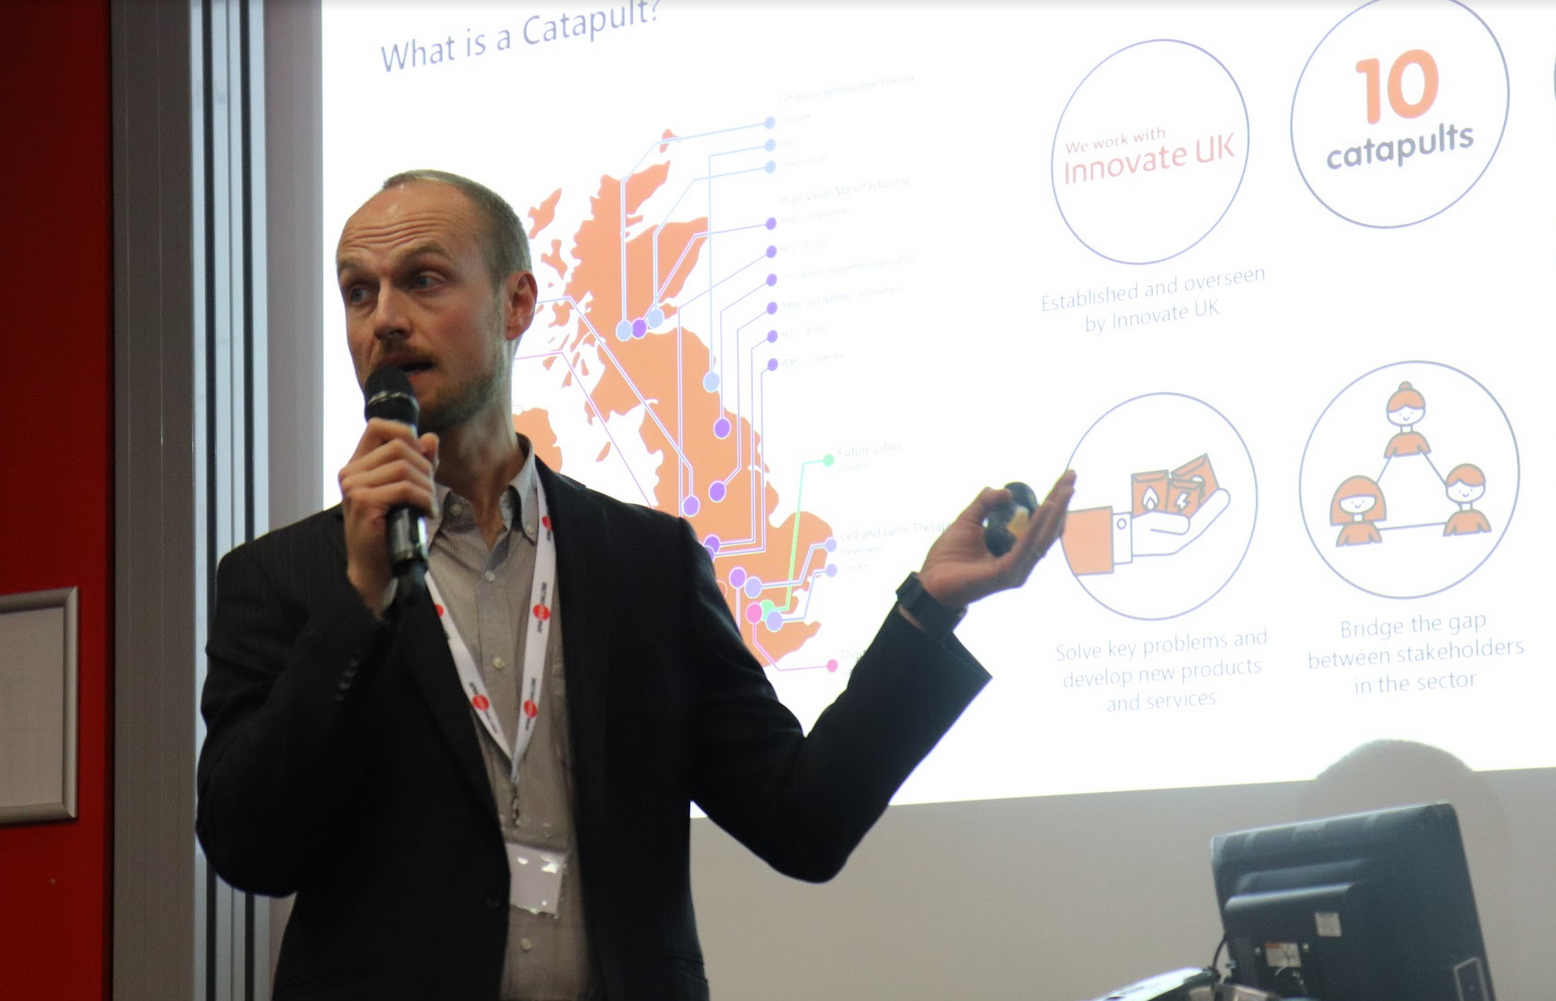 Andrew Stokes, Business Development Manager at Energy Systems Catapult, covering the steps his company is taking to further partnerships for innovation in the UK energy sector.